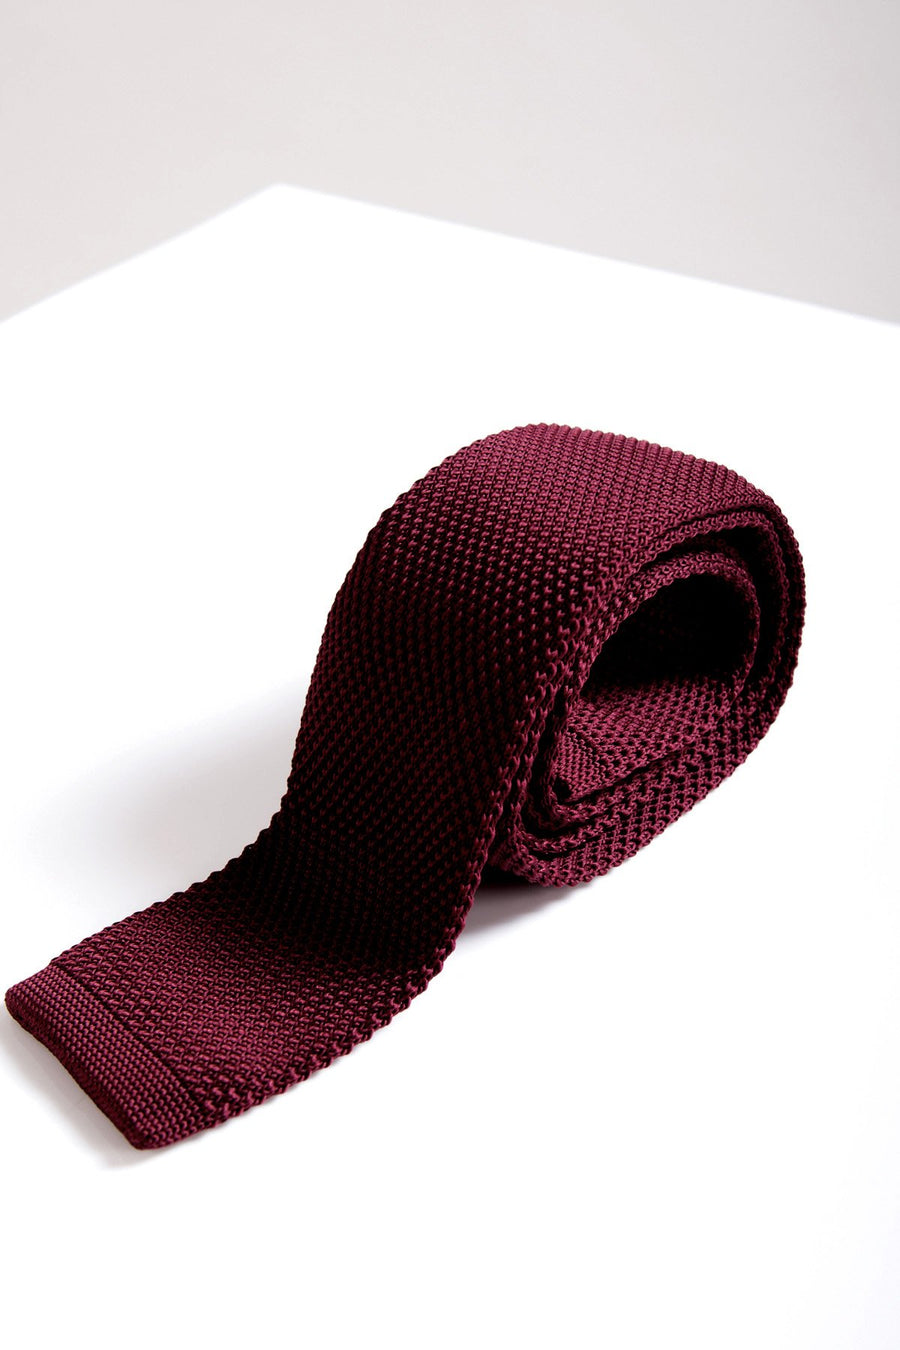 KT Wine Knitted Tie - Wedding Suit Direct